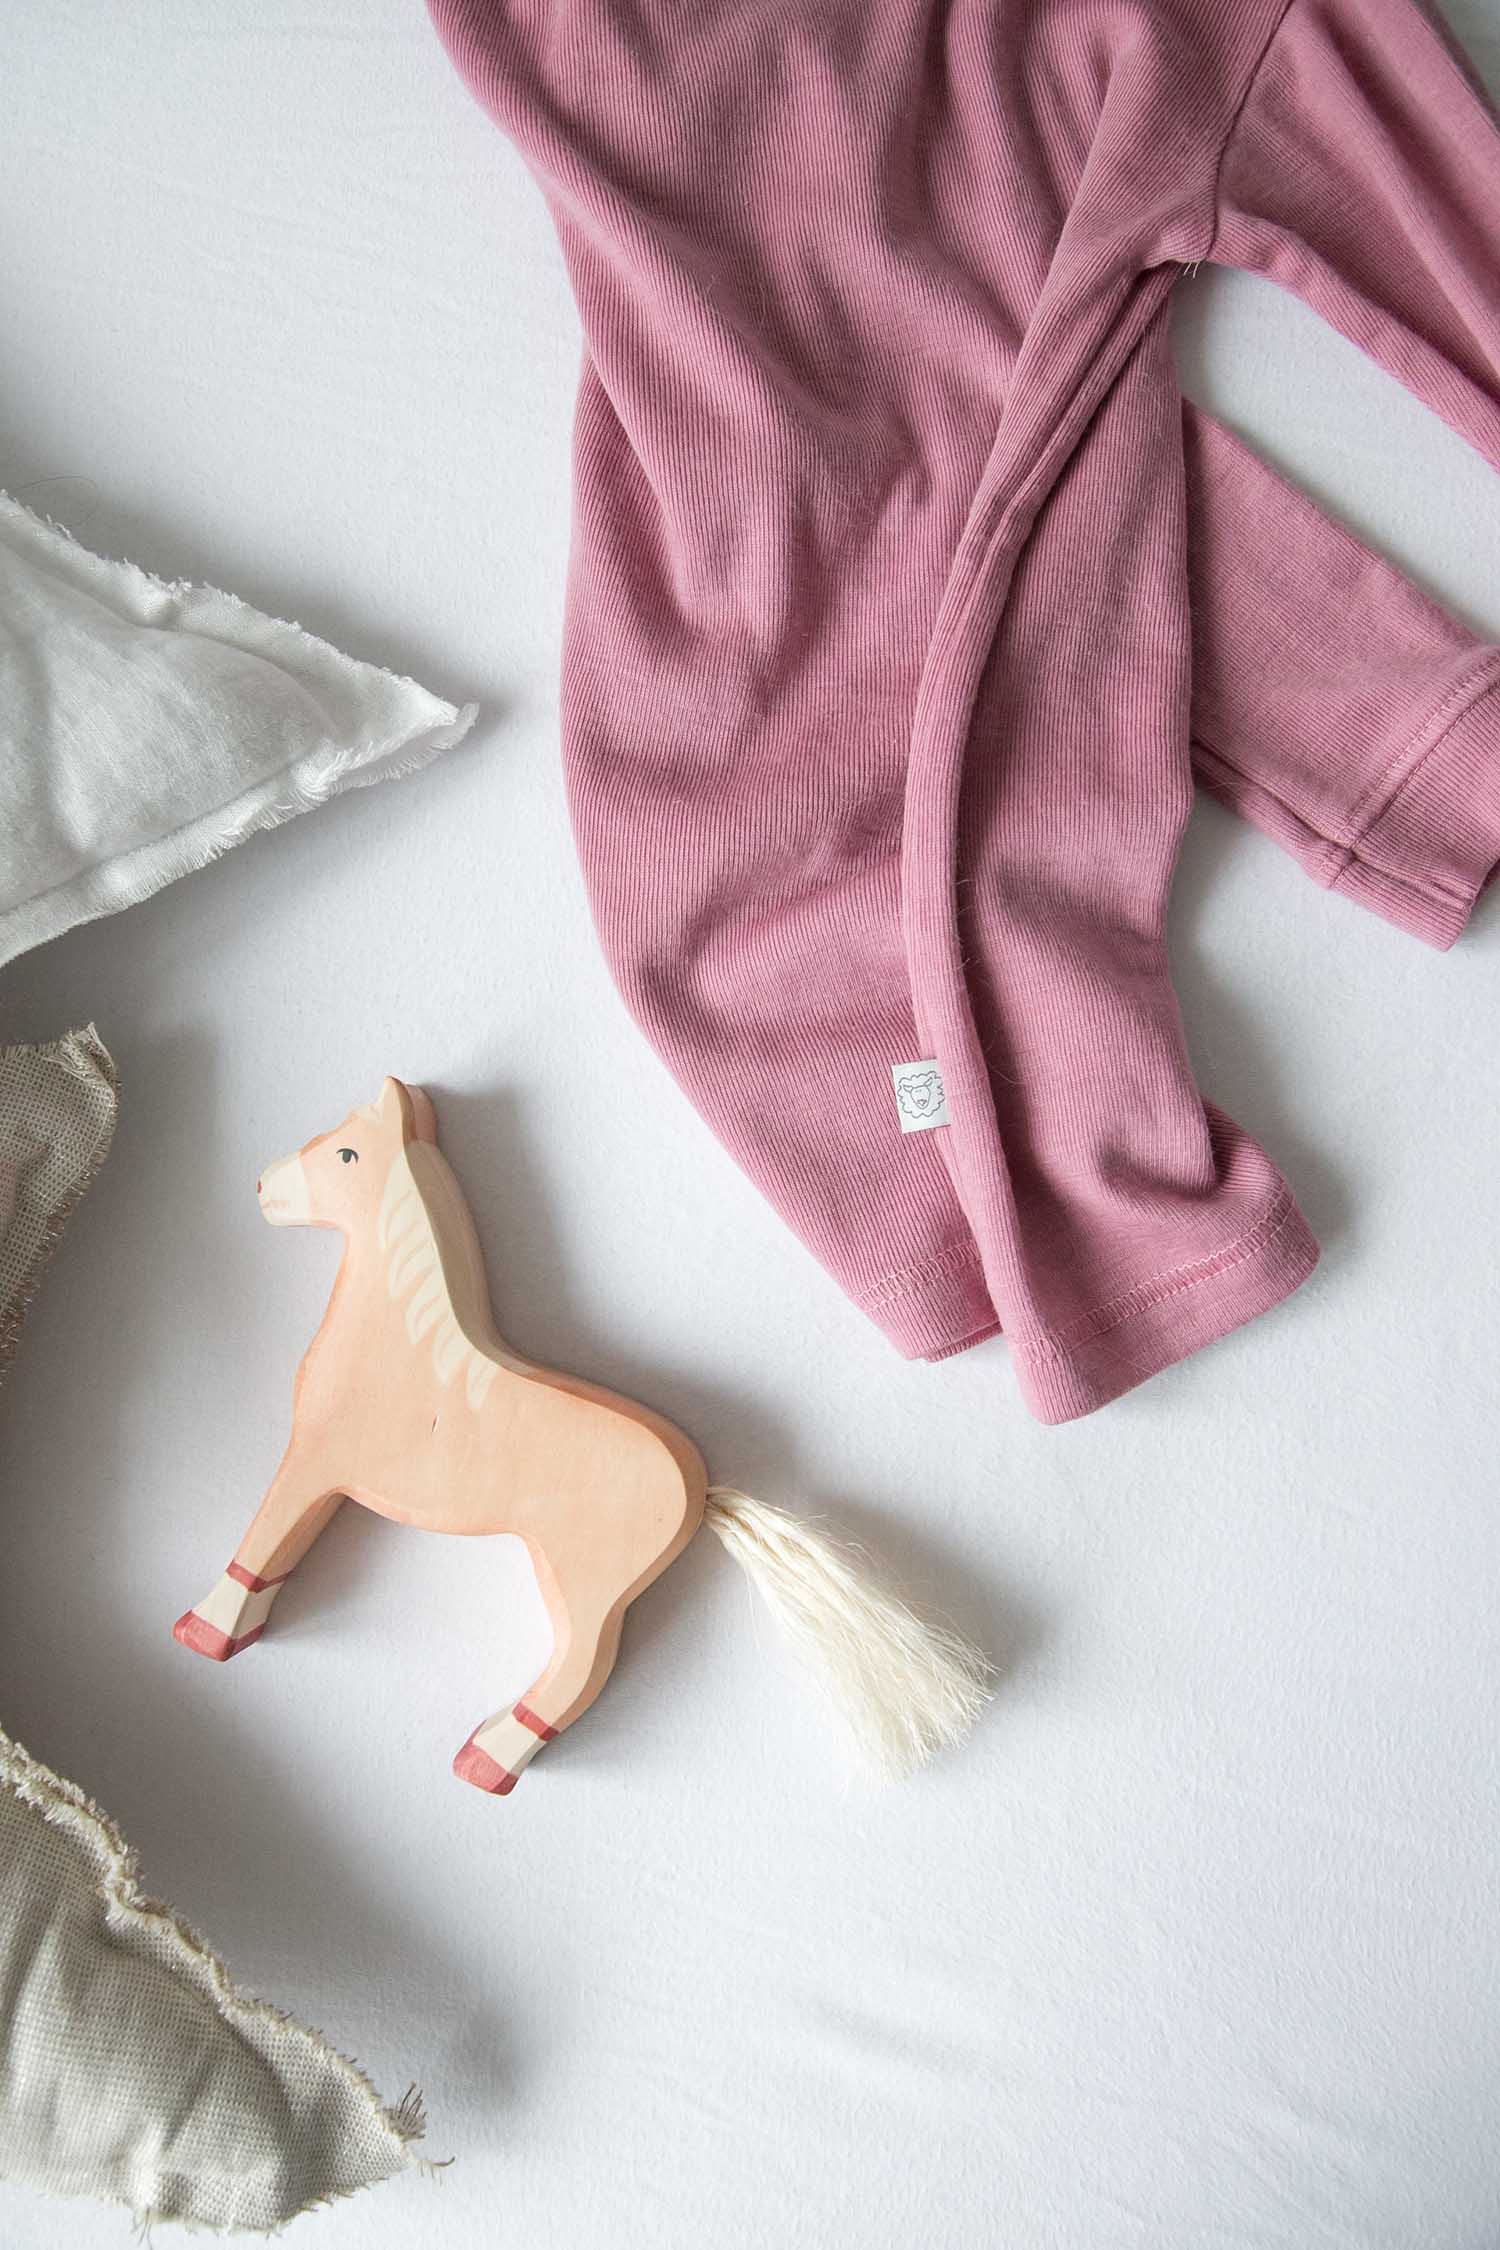 wooden horse with detail of pink merino wool pajamas